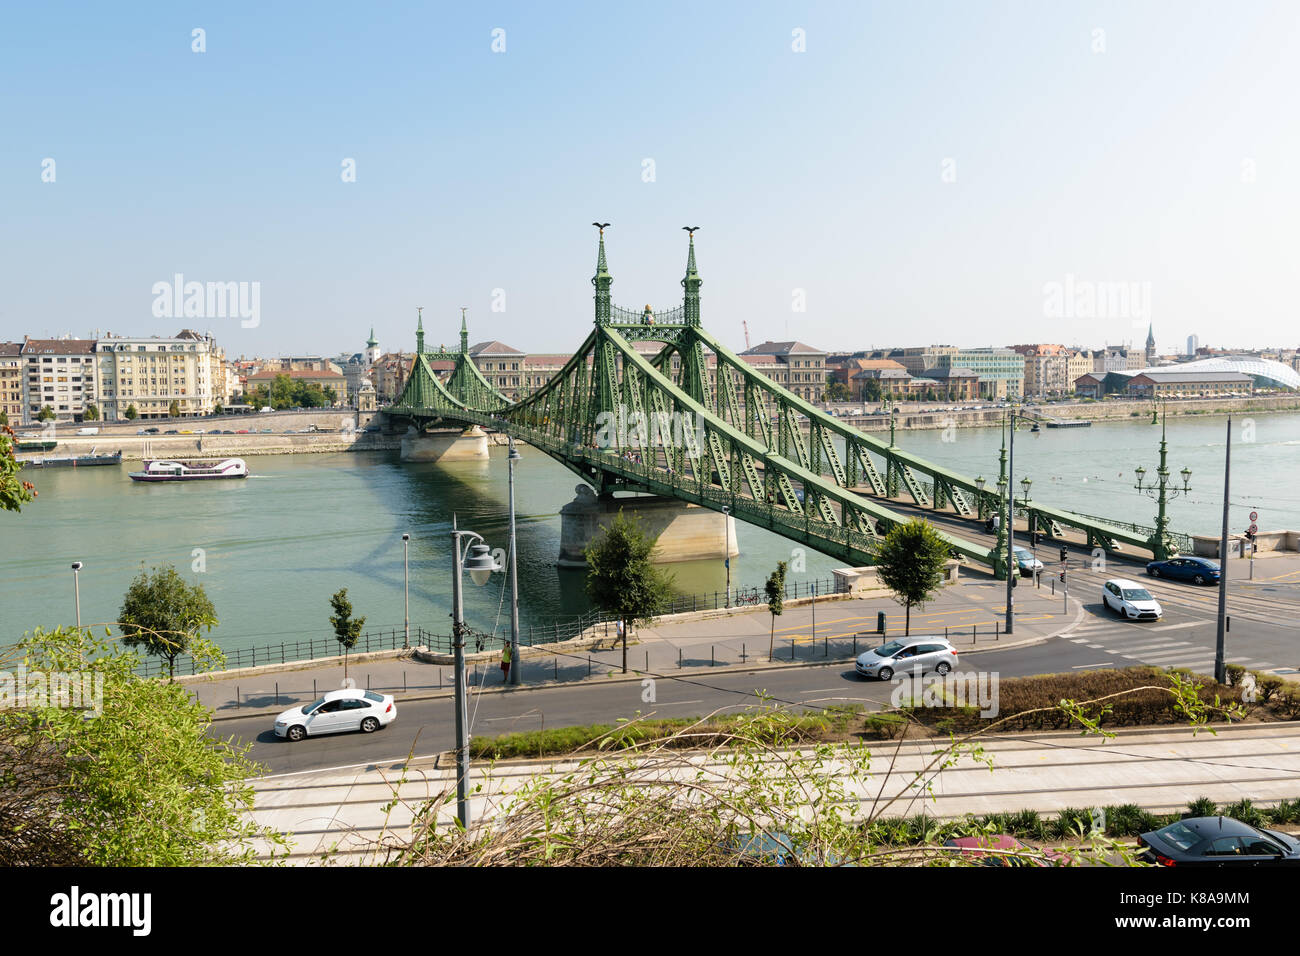 The Liberty Bridge in Budapest, Hungary with some old trams in the foreground passing by. Stock Photo